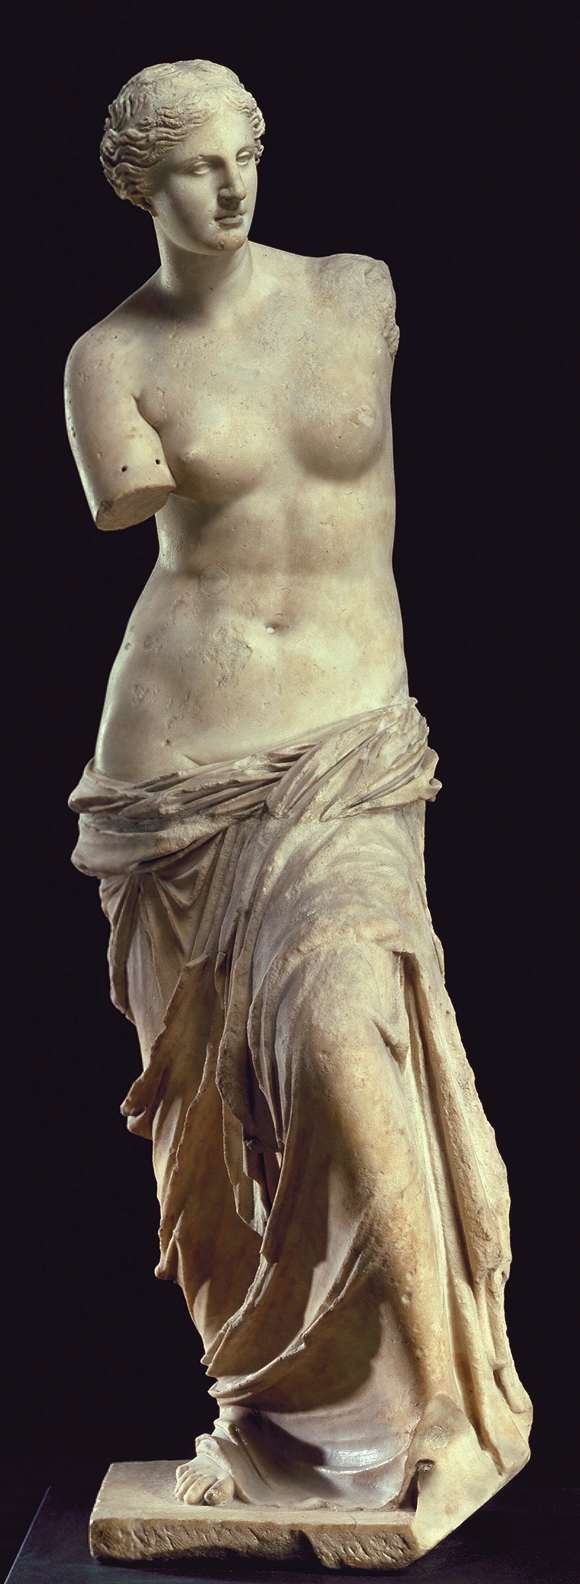 Venus de Milo (Aphrodite), Greek statue (marble), discovered on the island of Milos, 2nd century BC (Musée du Louvre, Paris).